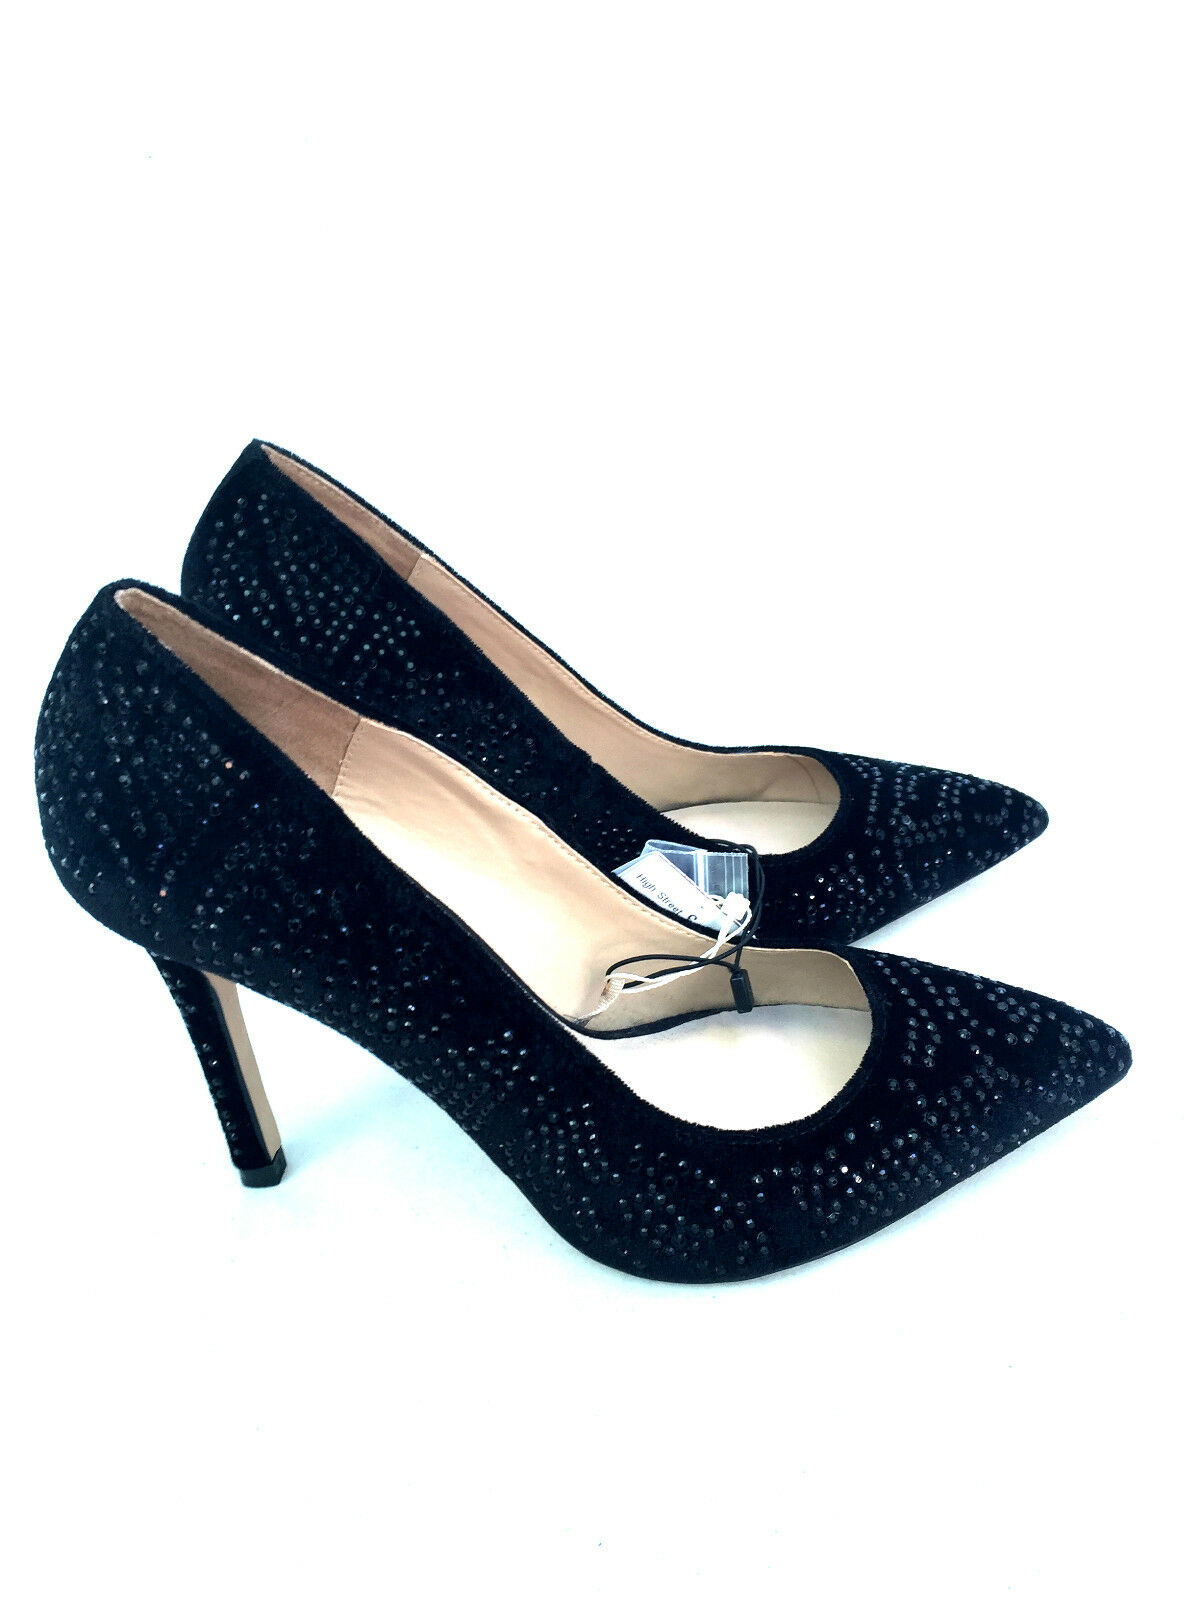 ZARA VELVET HIGH HEEL COURT SHOES WITH DIAMANTE SIZE UK7/EUR40/US9